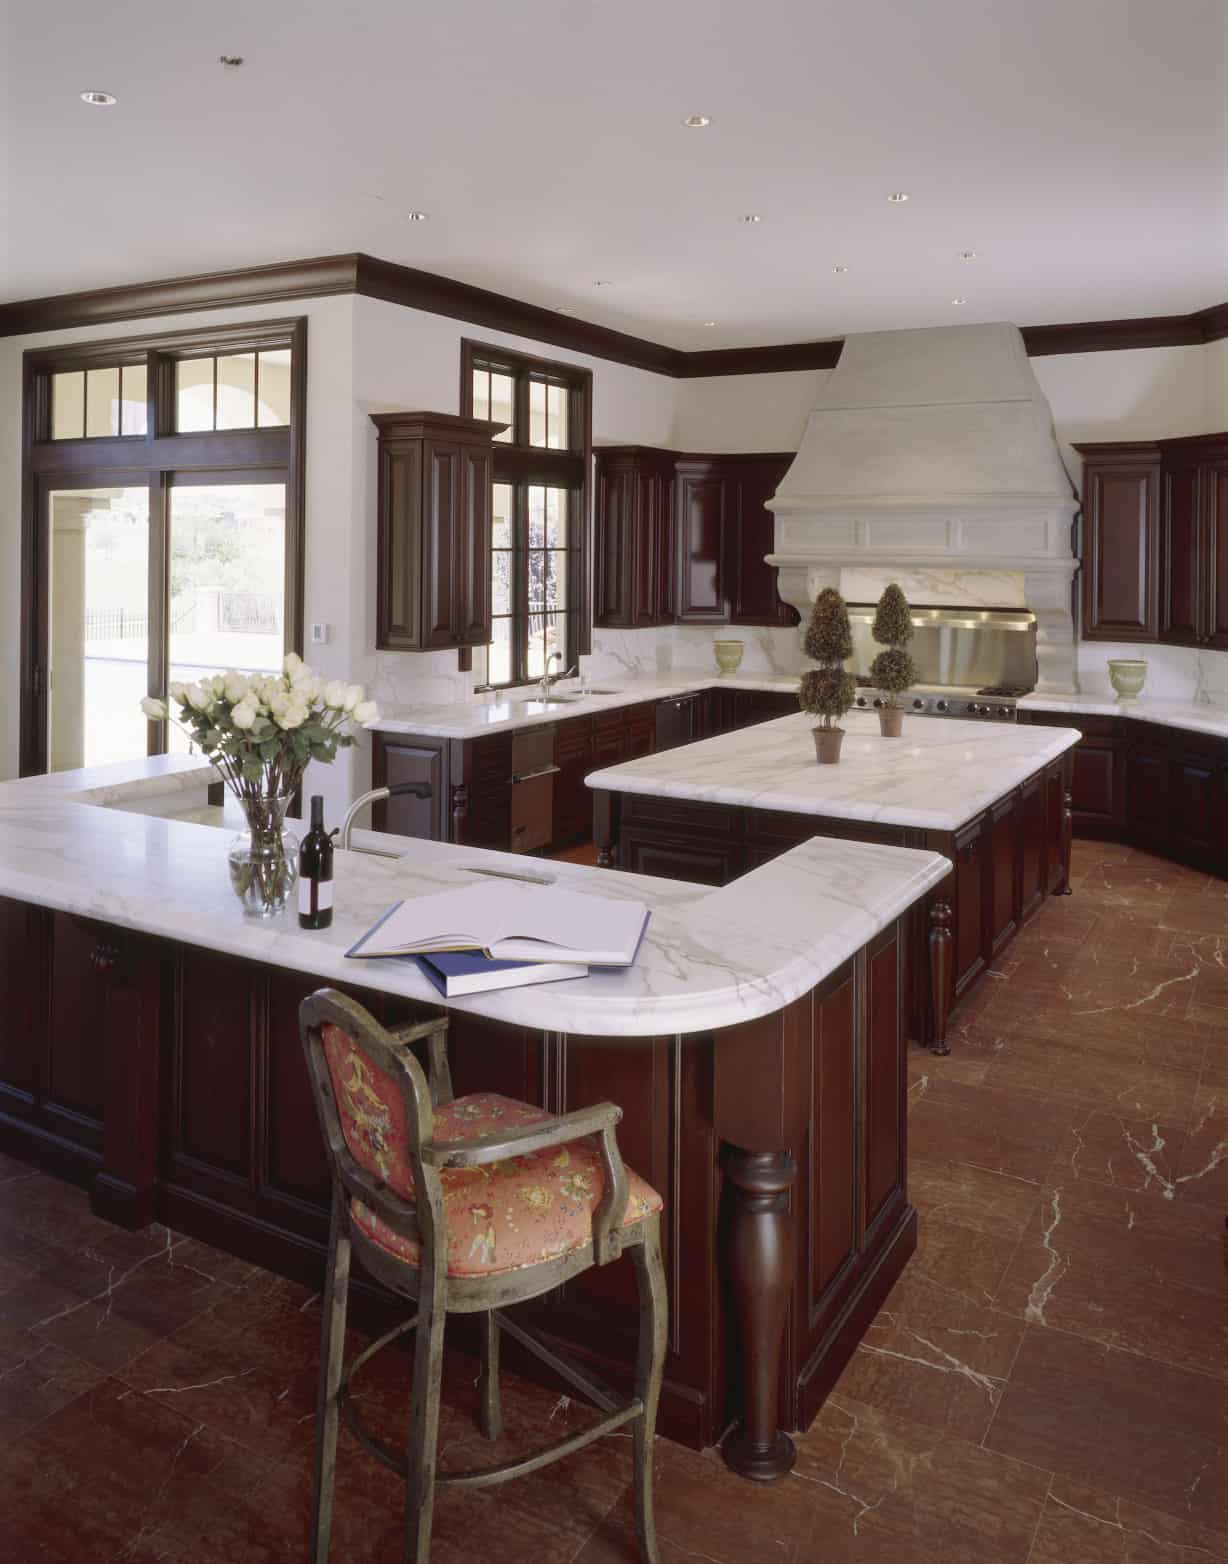 The monotone kitchen used wood, marble and geometry to boast of its islands and architecture. With smooth countertops making kitchen work easy to do and with lot of natural light and soft indoor lighting, this kitchen is perfect to dine in.